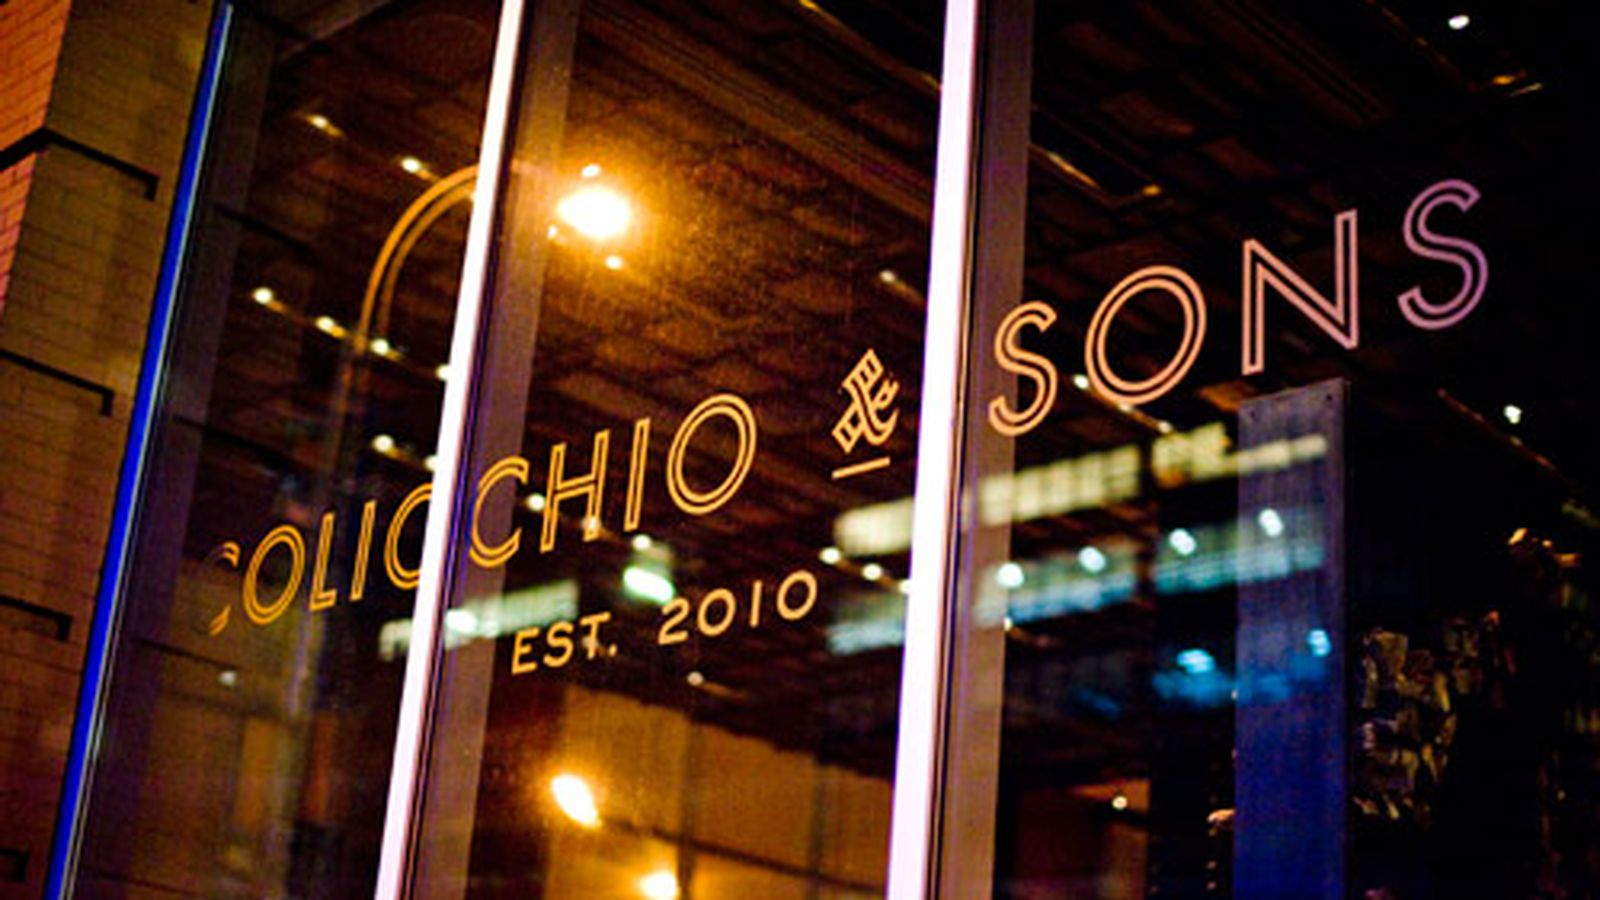 Colicchio & Sons Is Closing After Six Years in West Chelsea - Eater NY